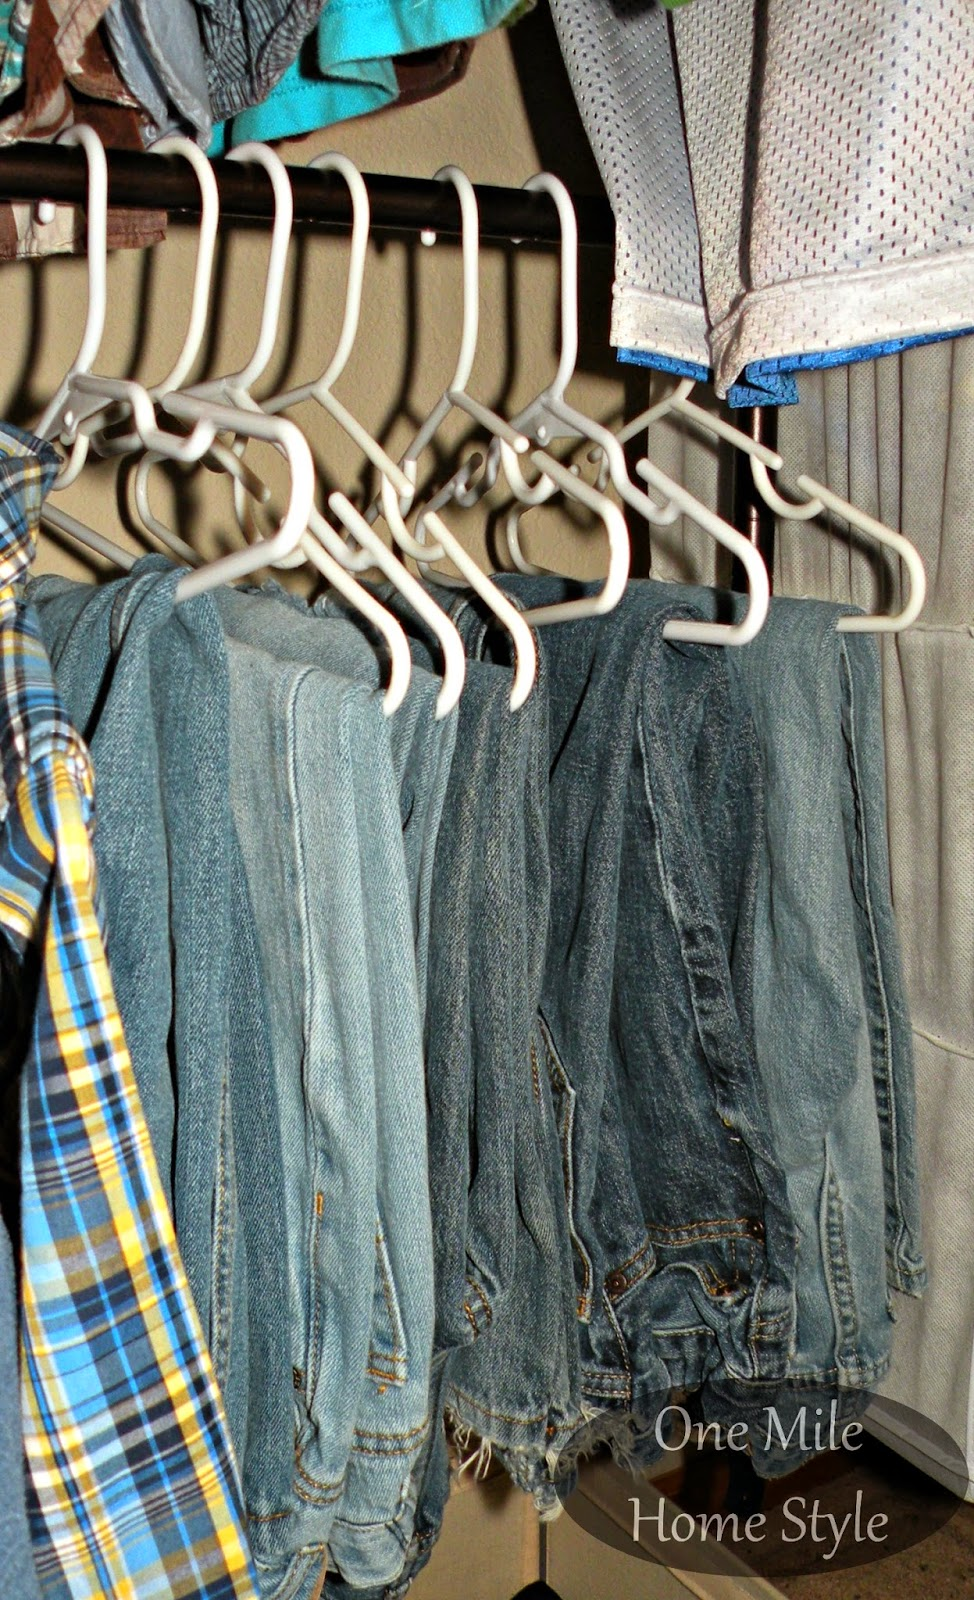 Hanging jeans for better organization